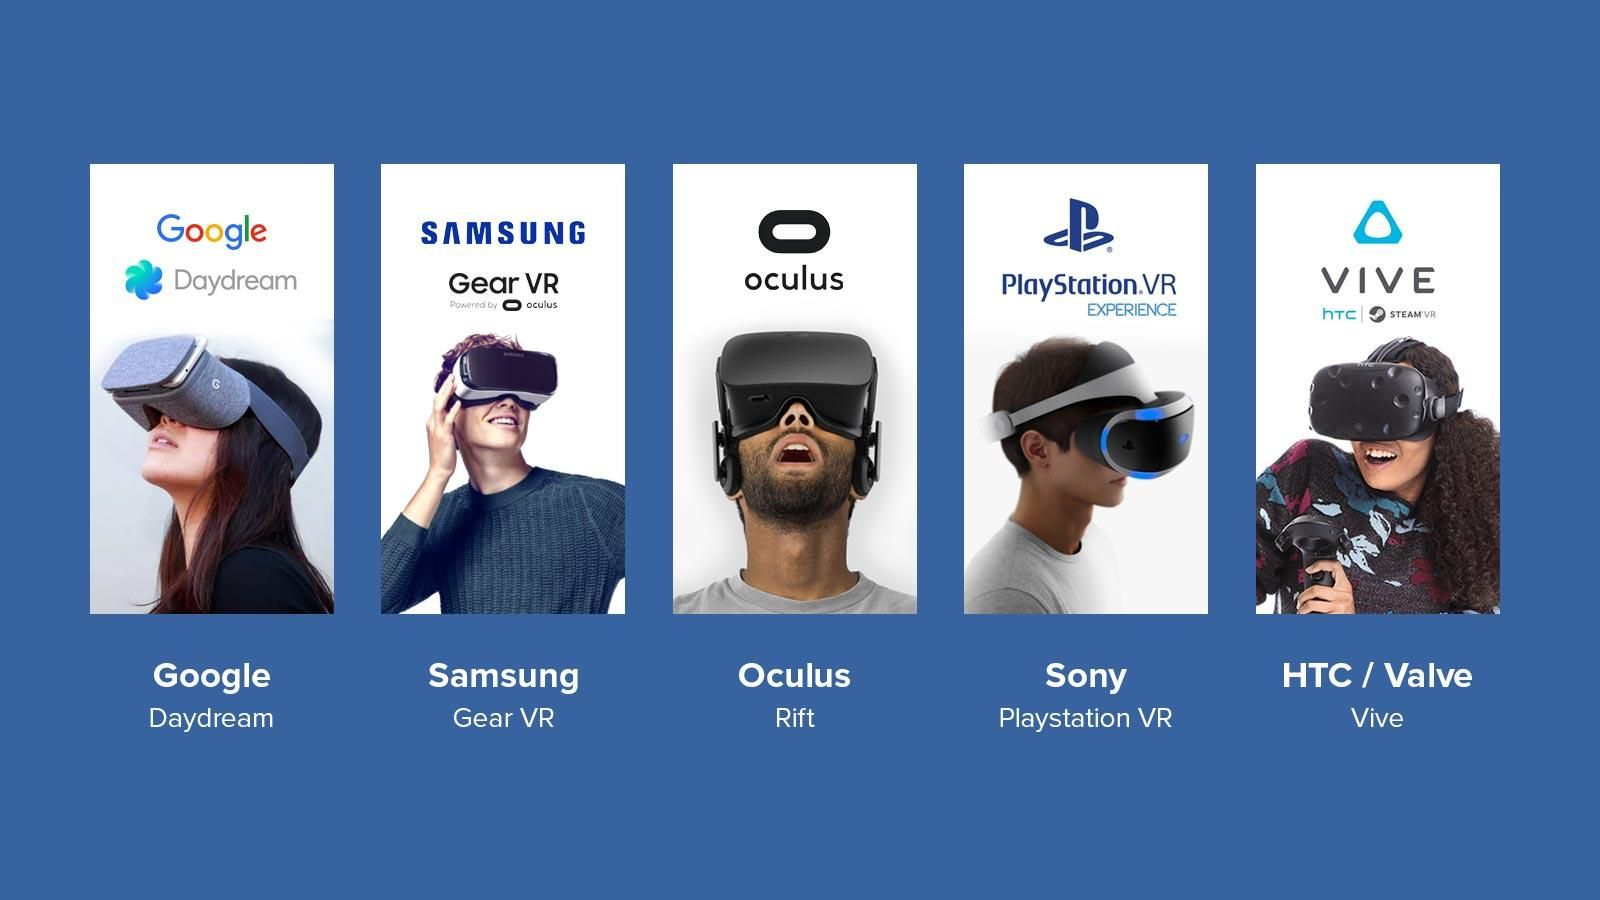 People Wearing Main Vr Headset In The Market Today Google Daydream Samsung Gear Vr Oculus R Virtual Reality Virtual Reality Design Virtual Reality Companies